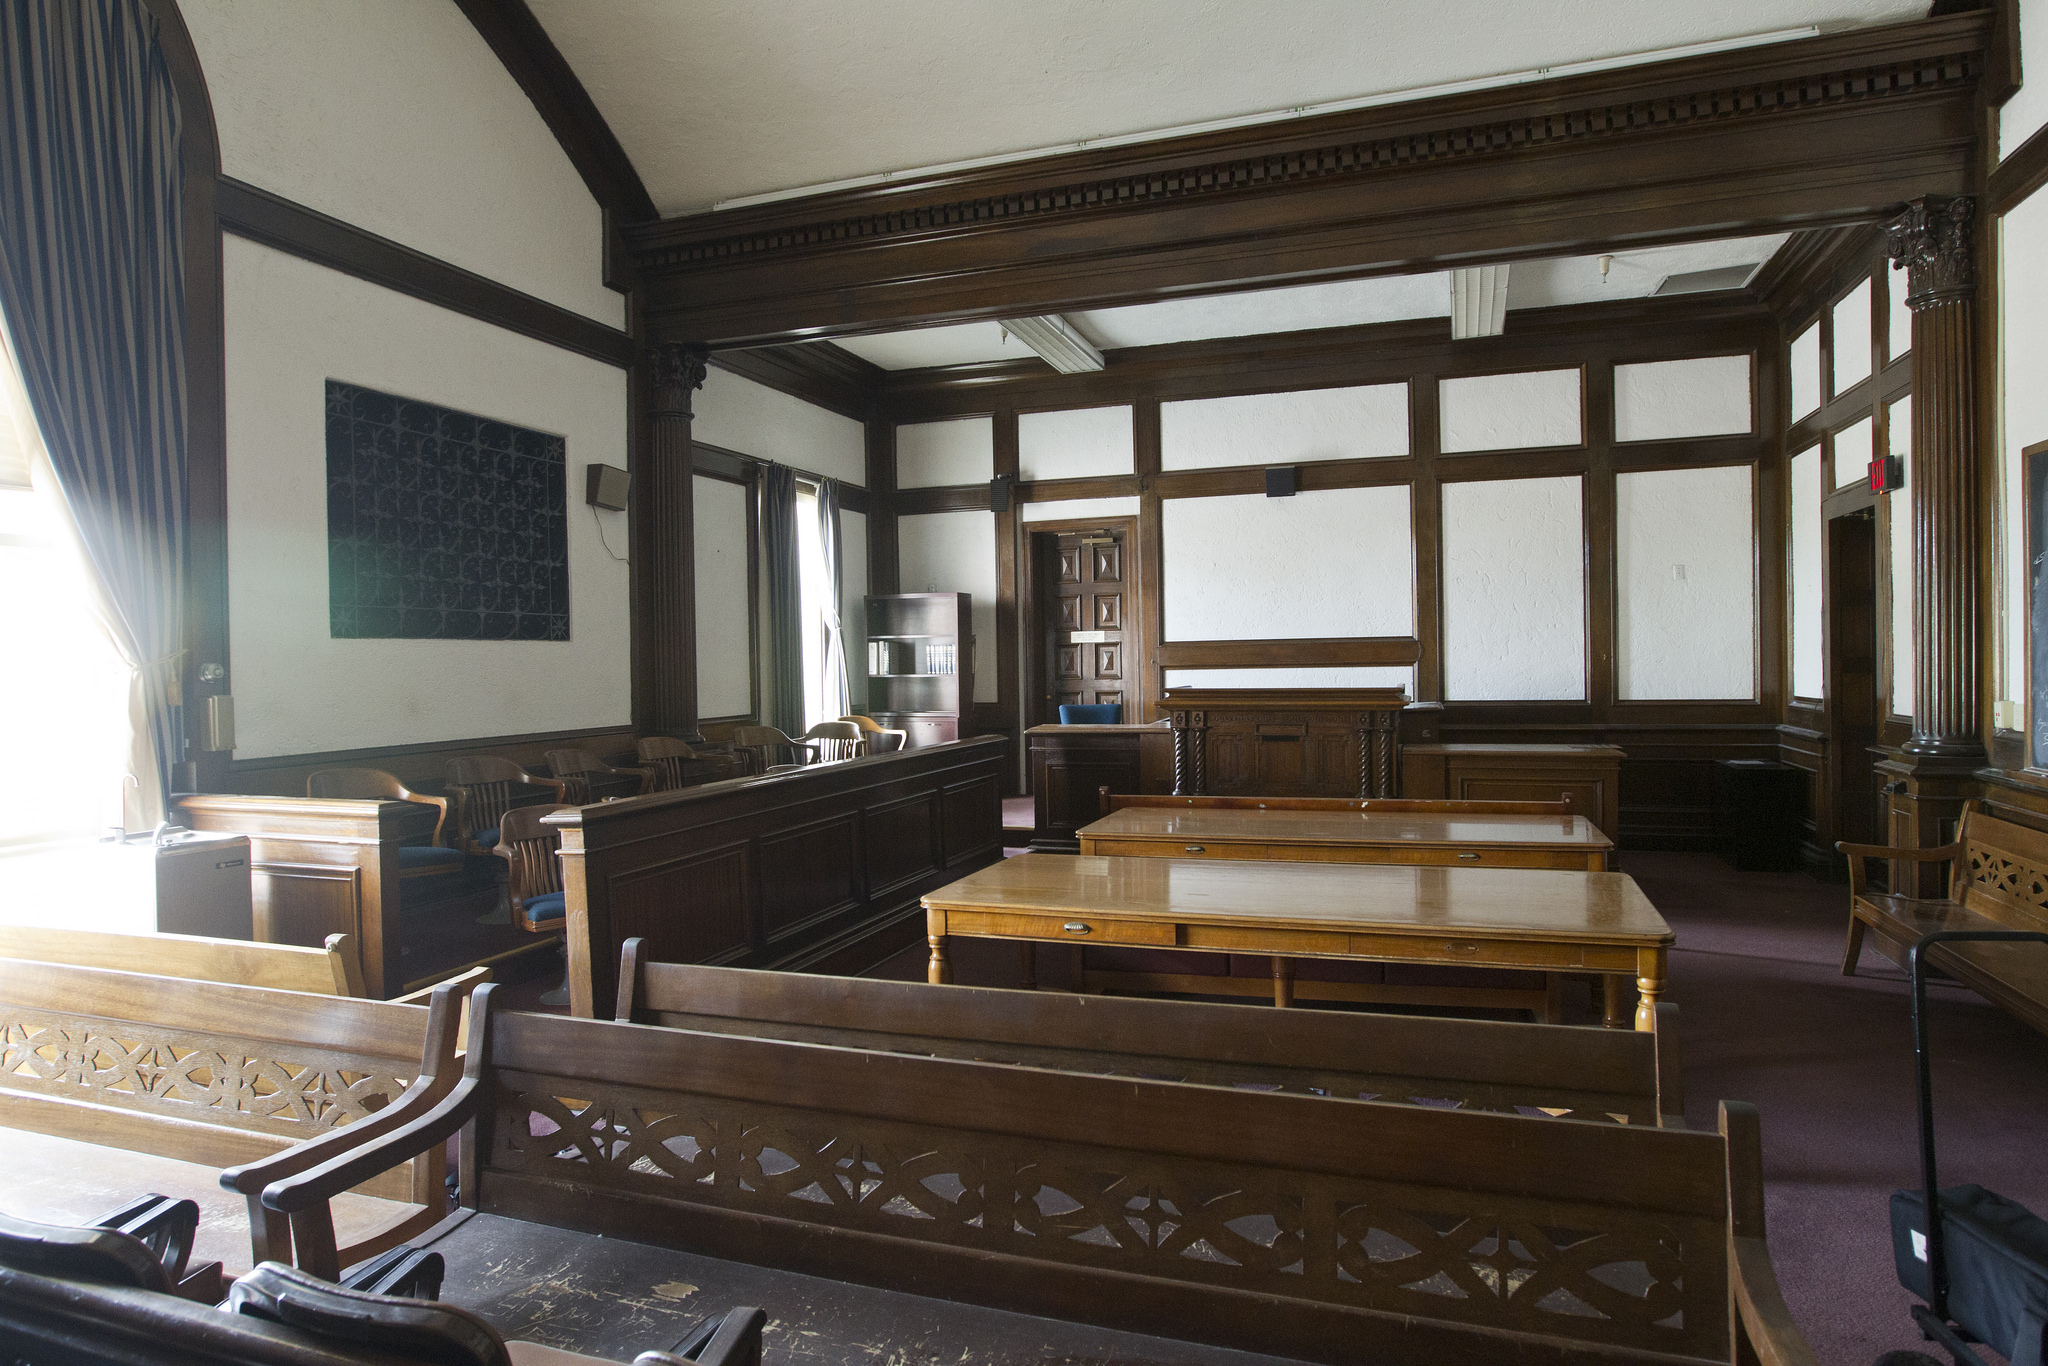 Photos Inside the historic Pima County Courthouse